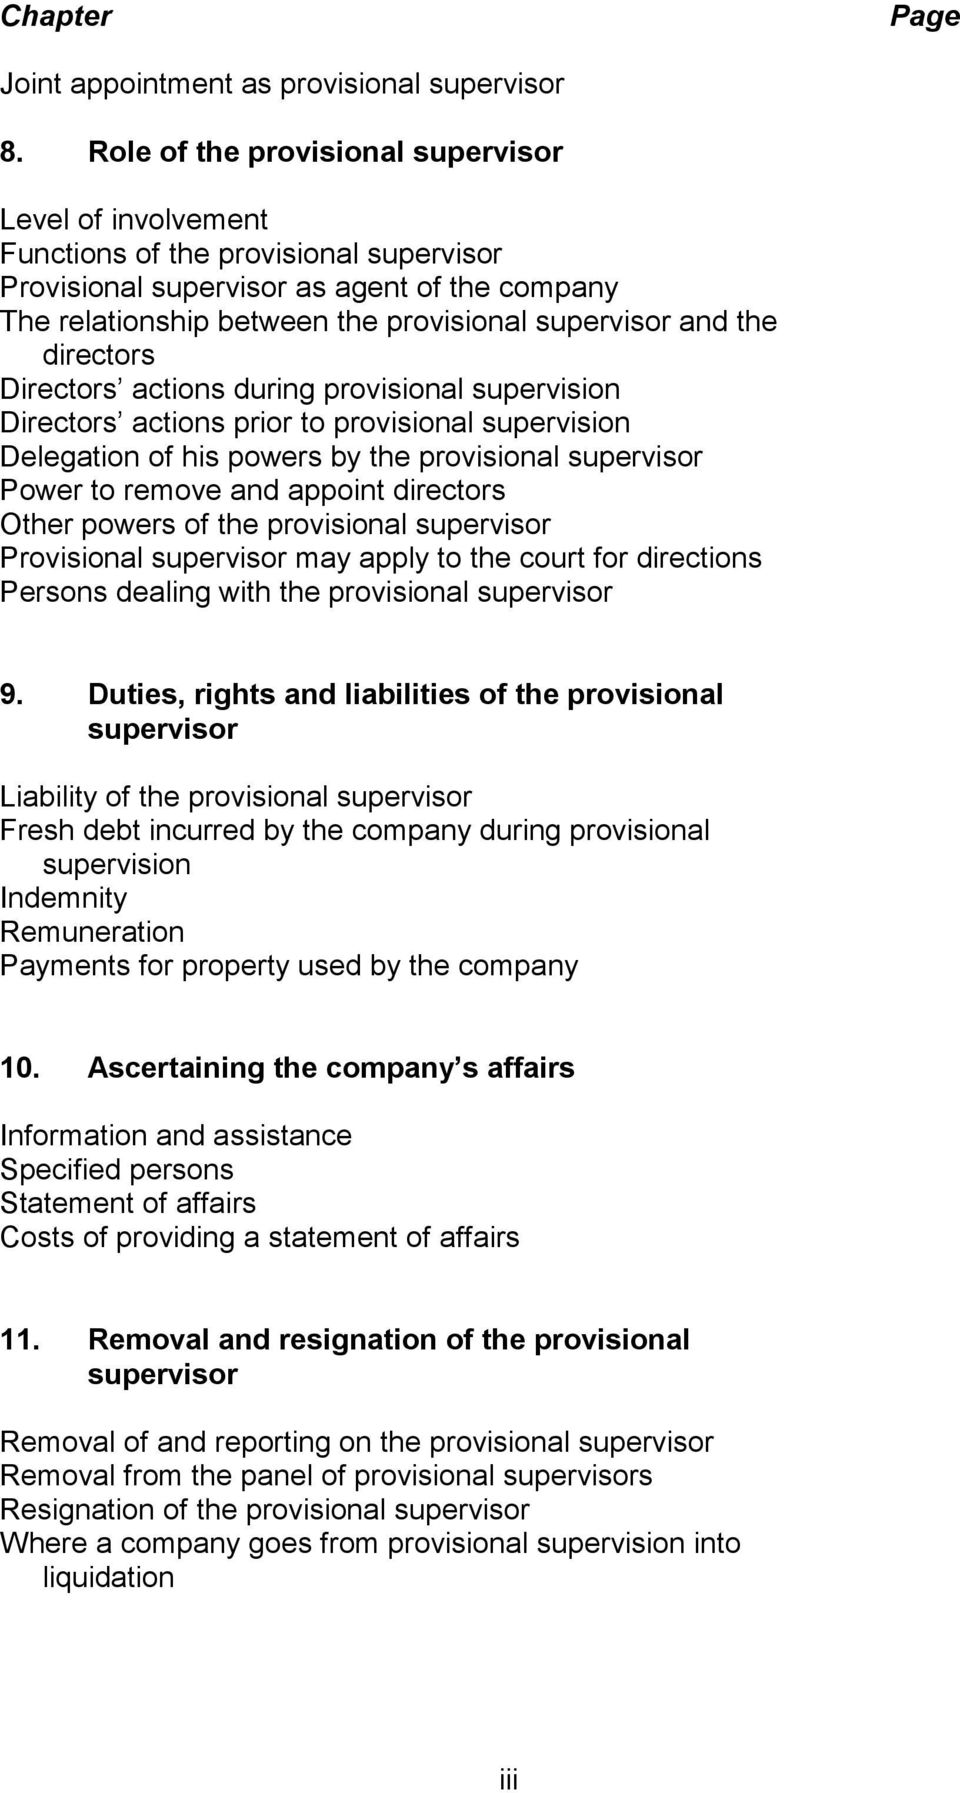 the directors Directors actions during provisional supervision Directors actions prior to provisional supervision Delegation of his powers by the provisional supervisor Power to remove and appoint